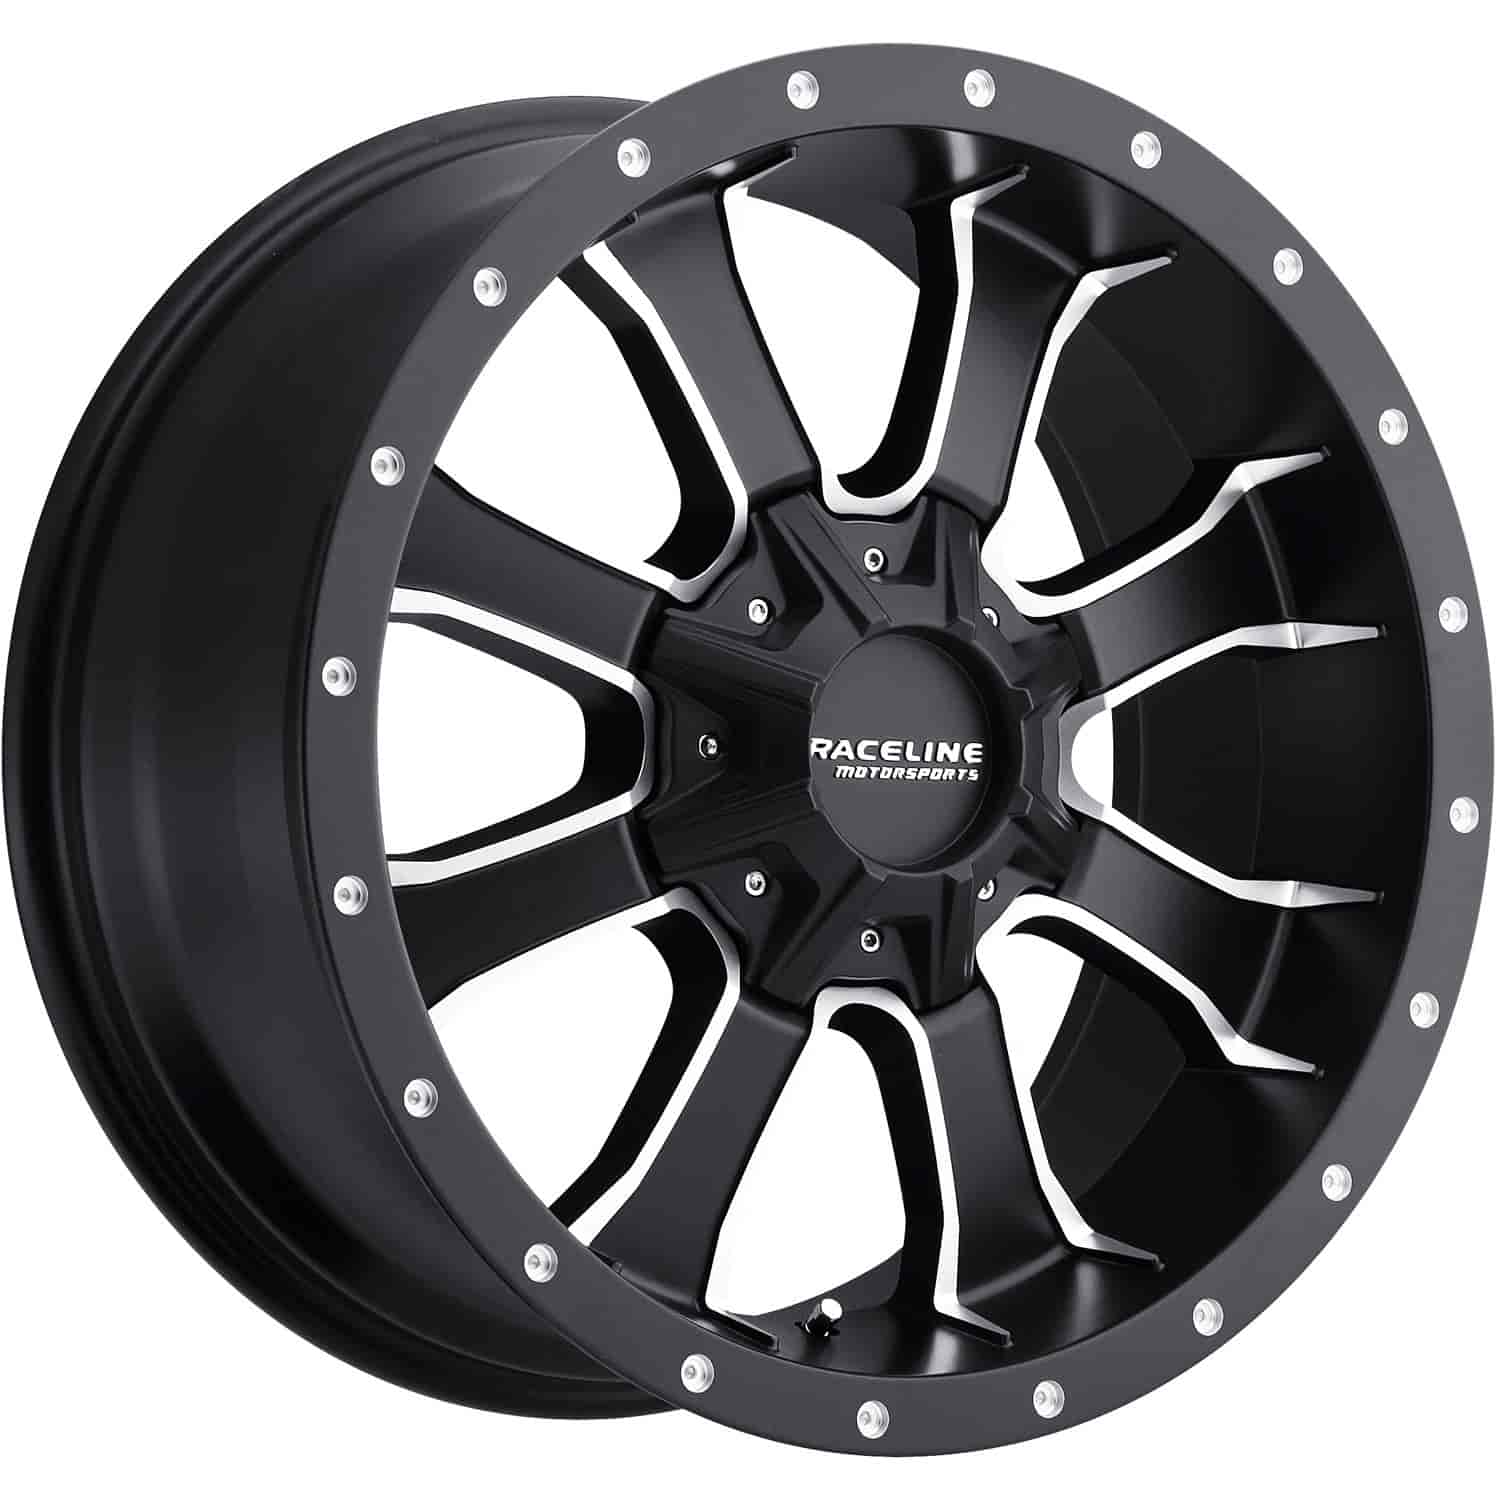 Raceline Wheels 927M-2906700